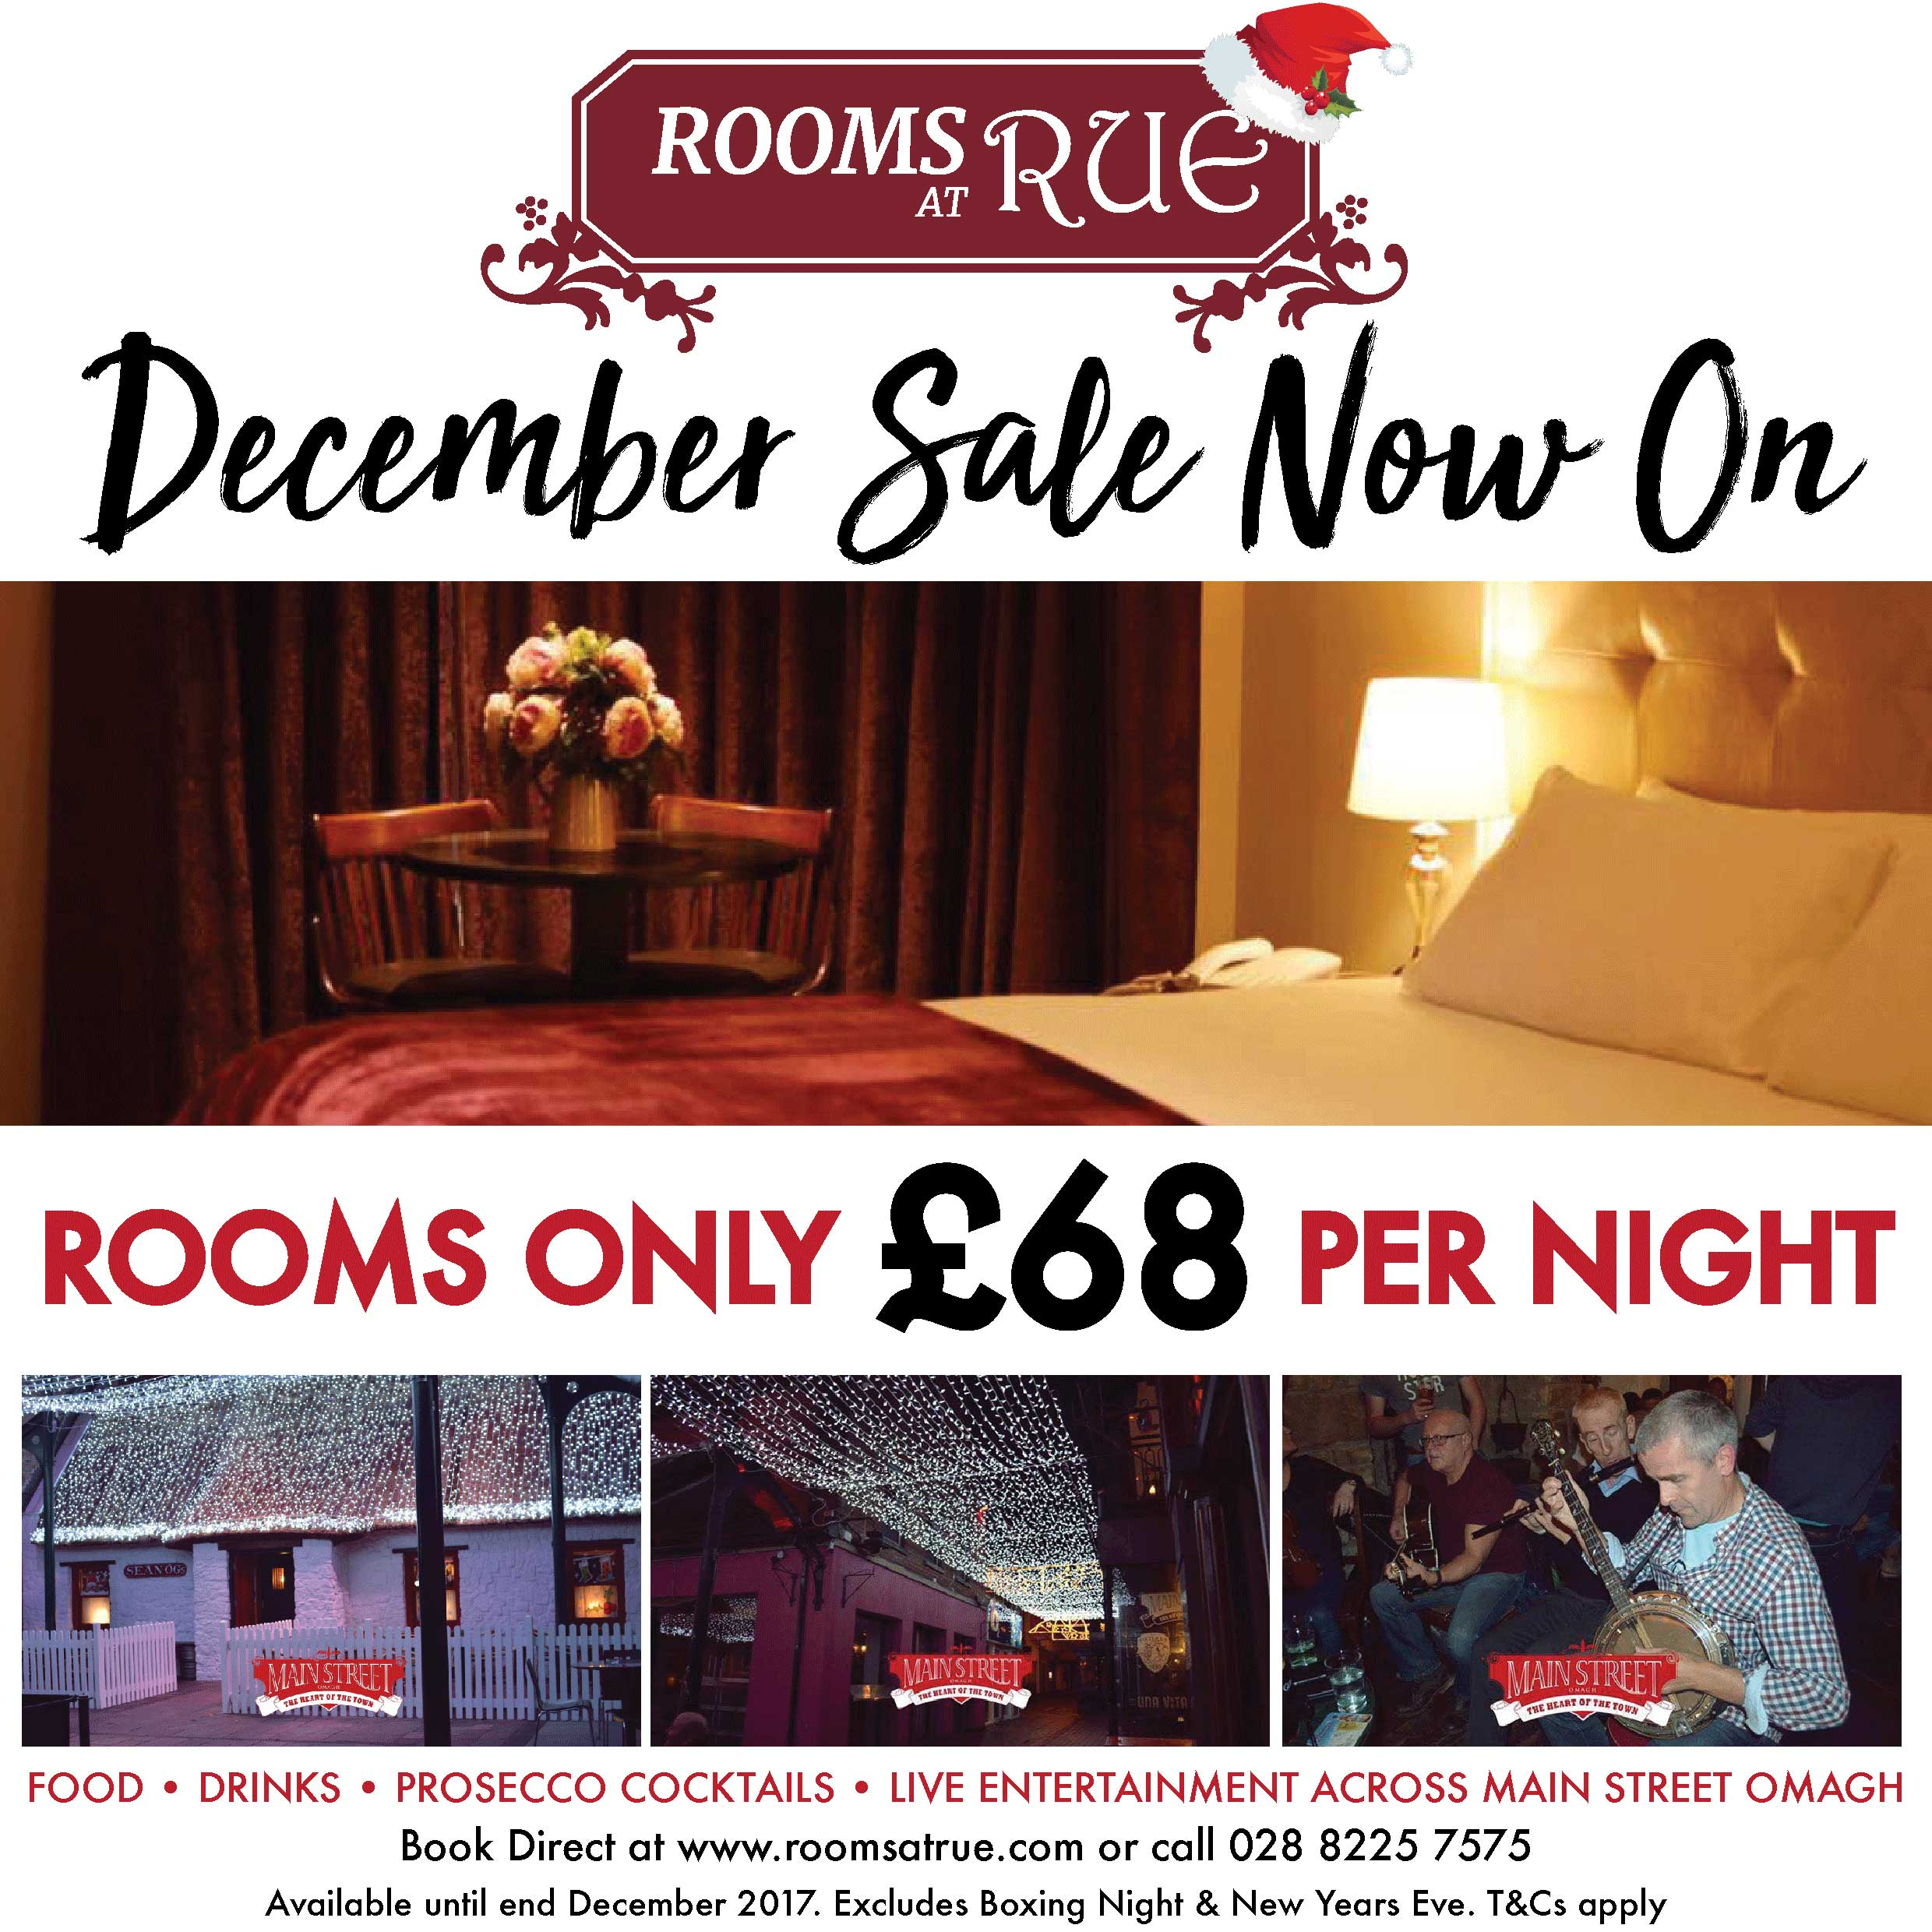 December rooms sale Rooms at Rue